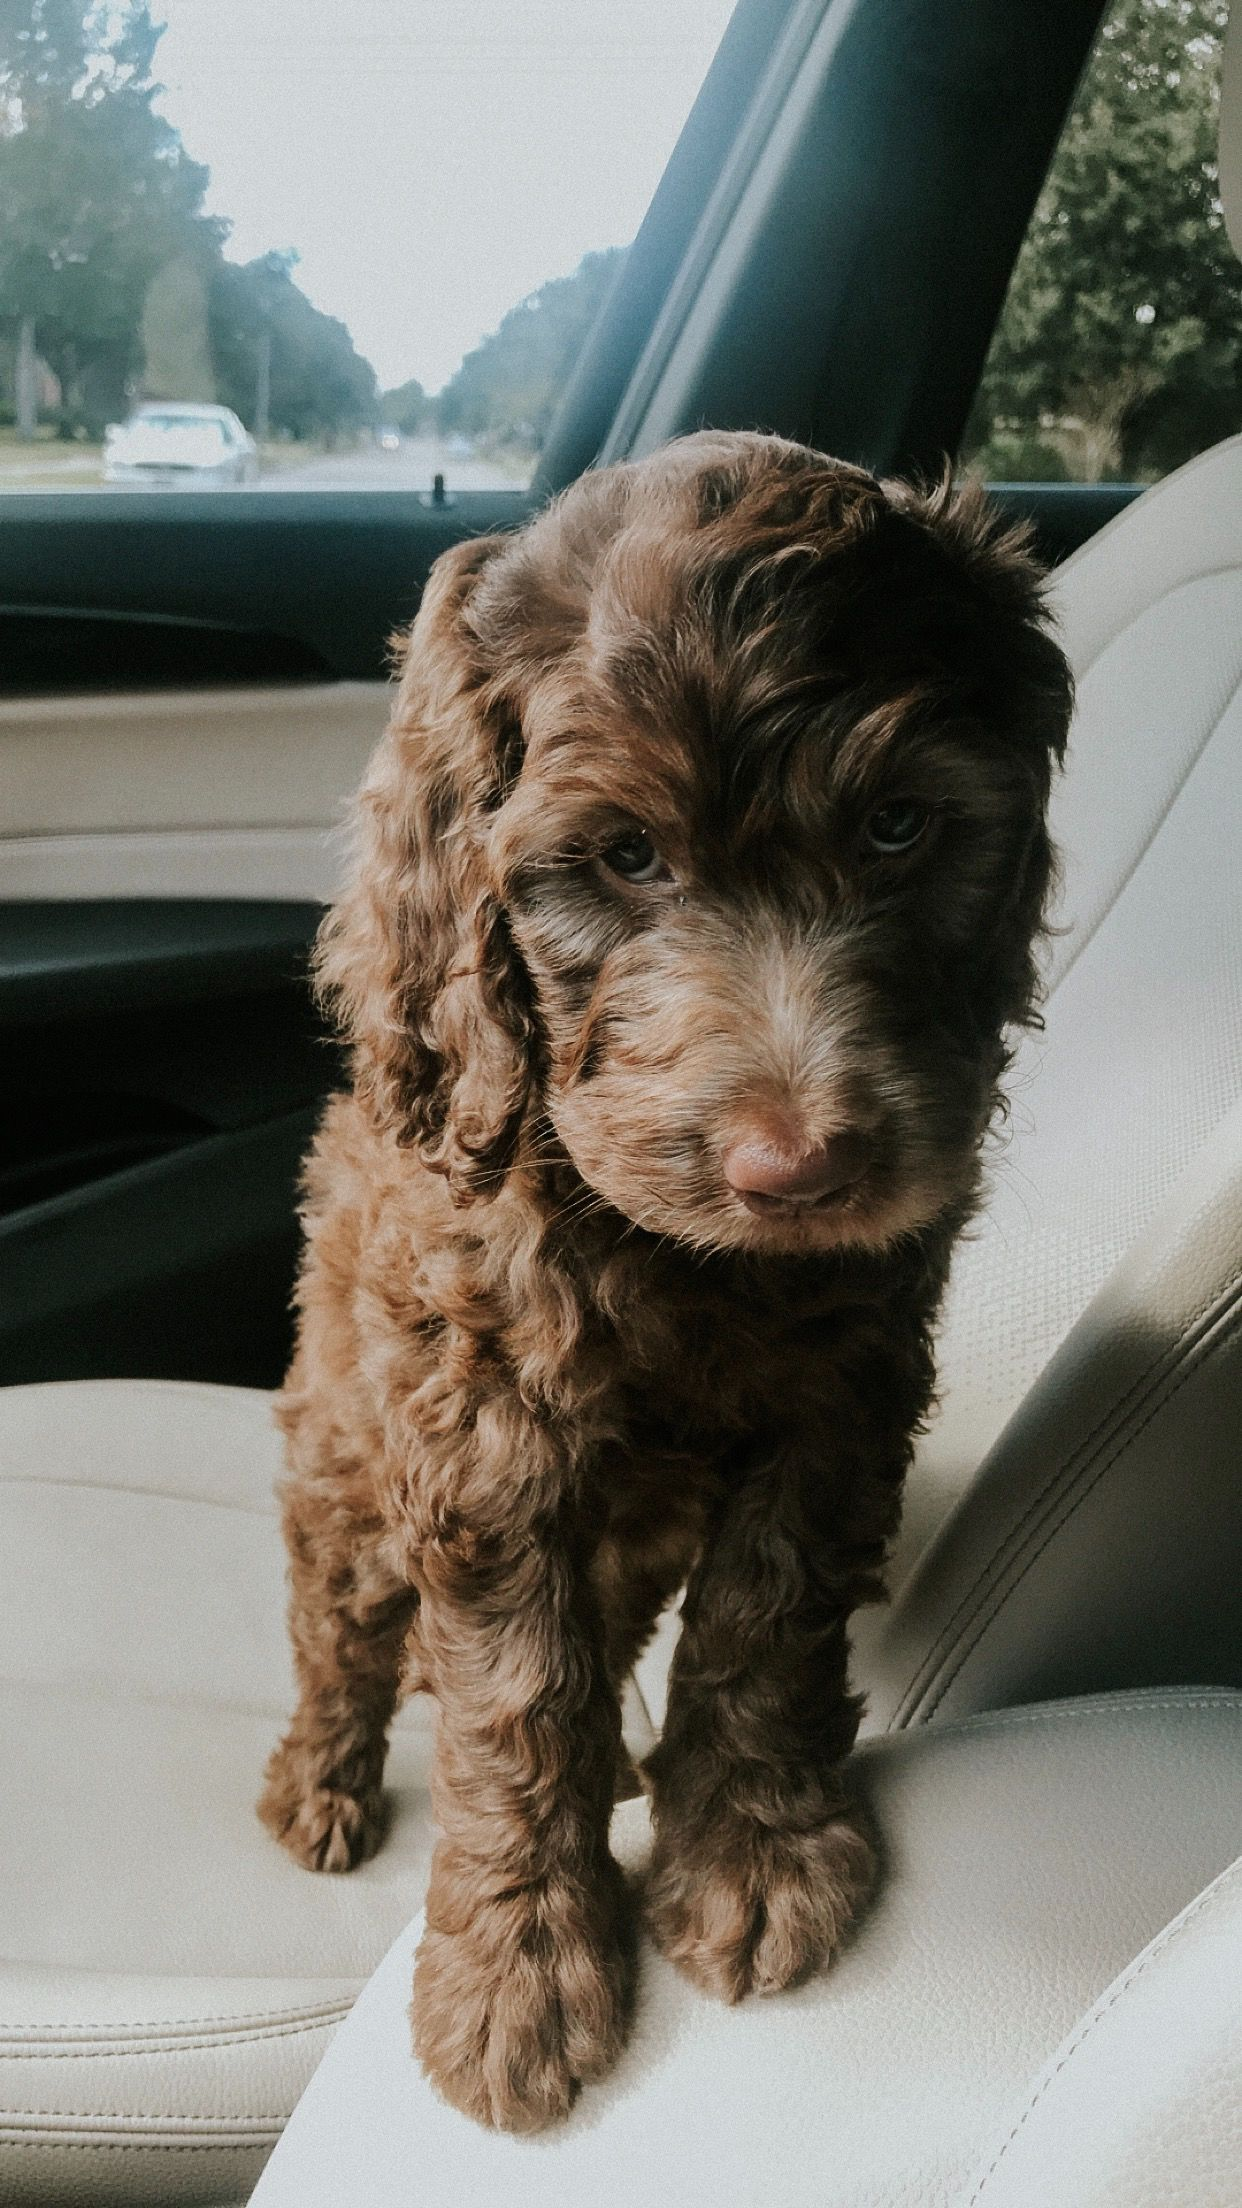 This Is My Puppy Ella Shes A Dark Brown Golden Doodle And A